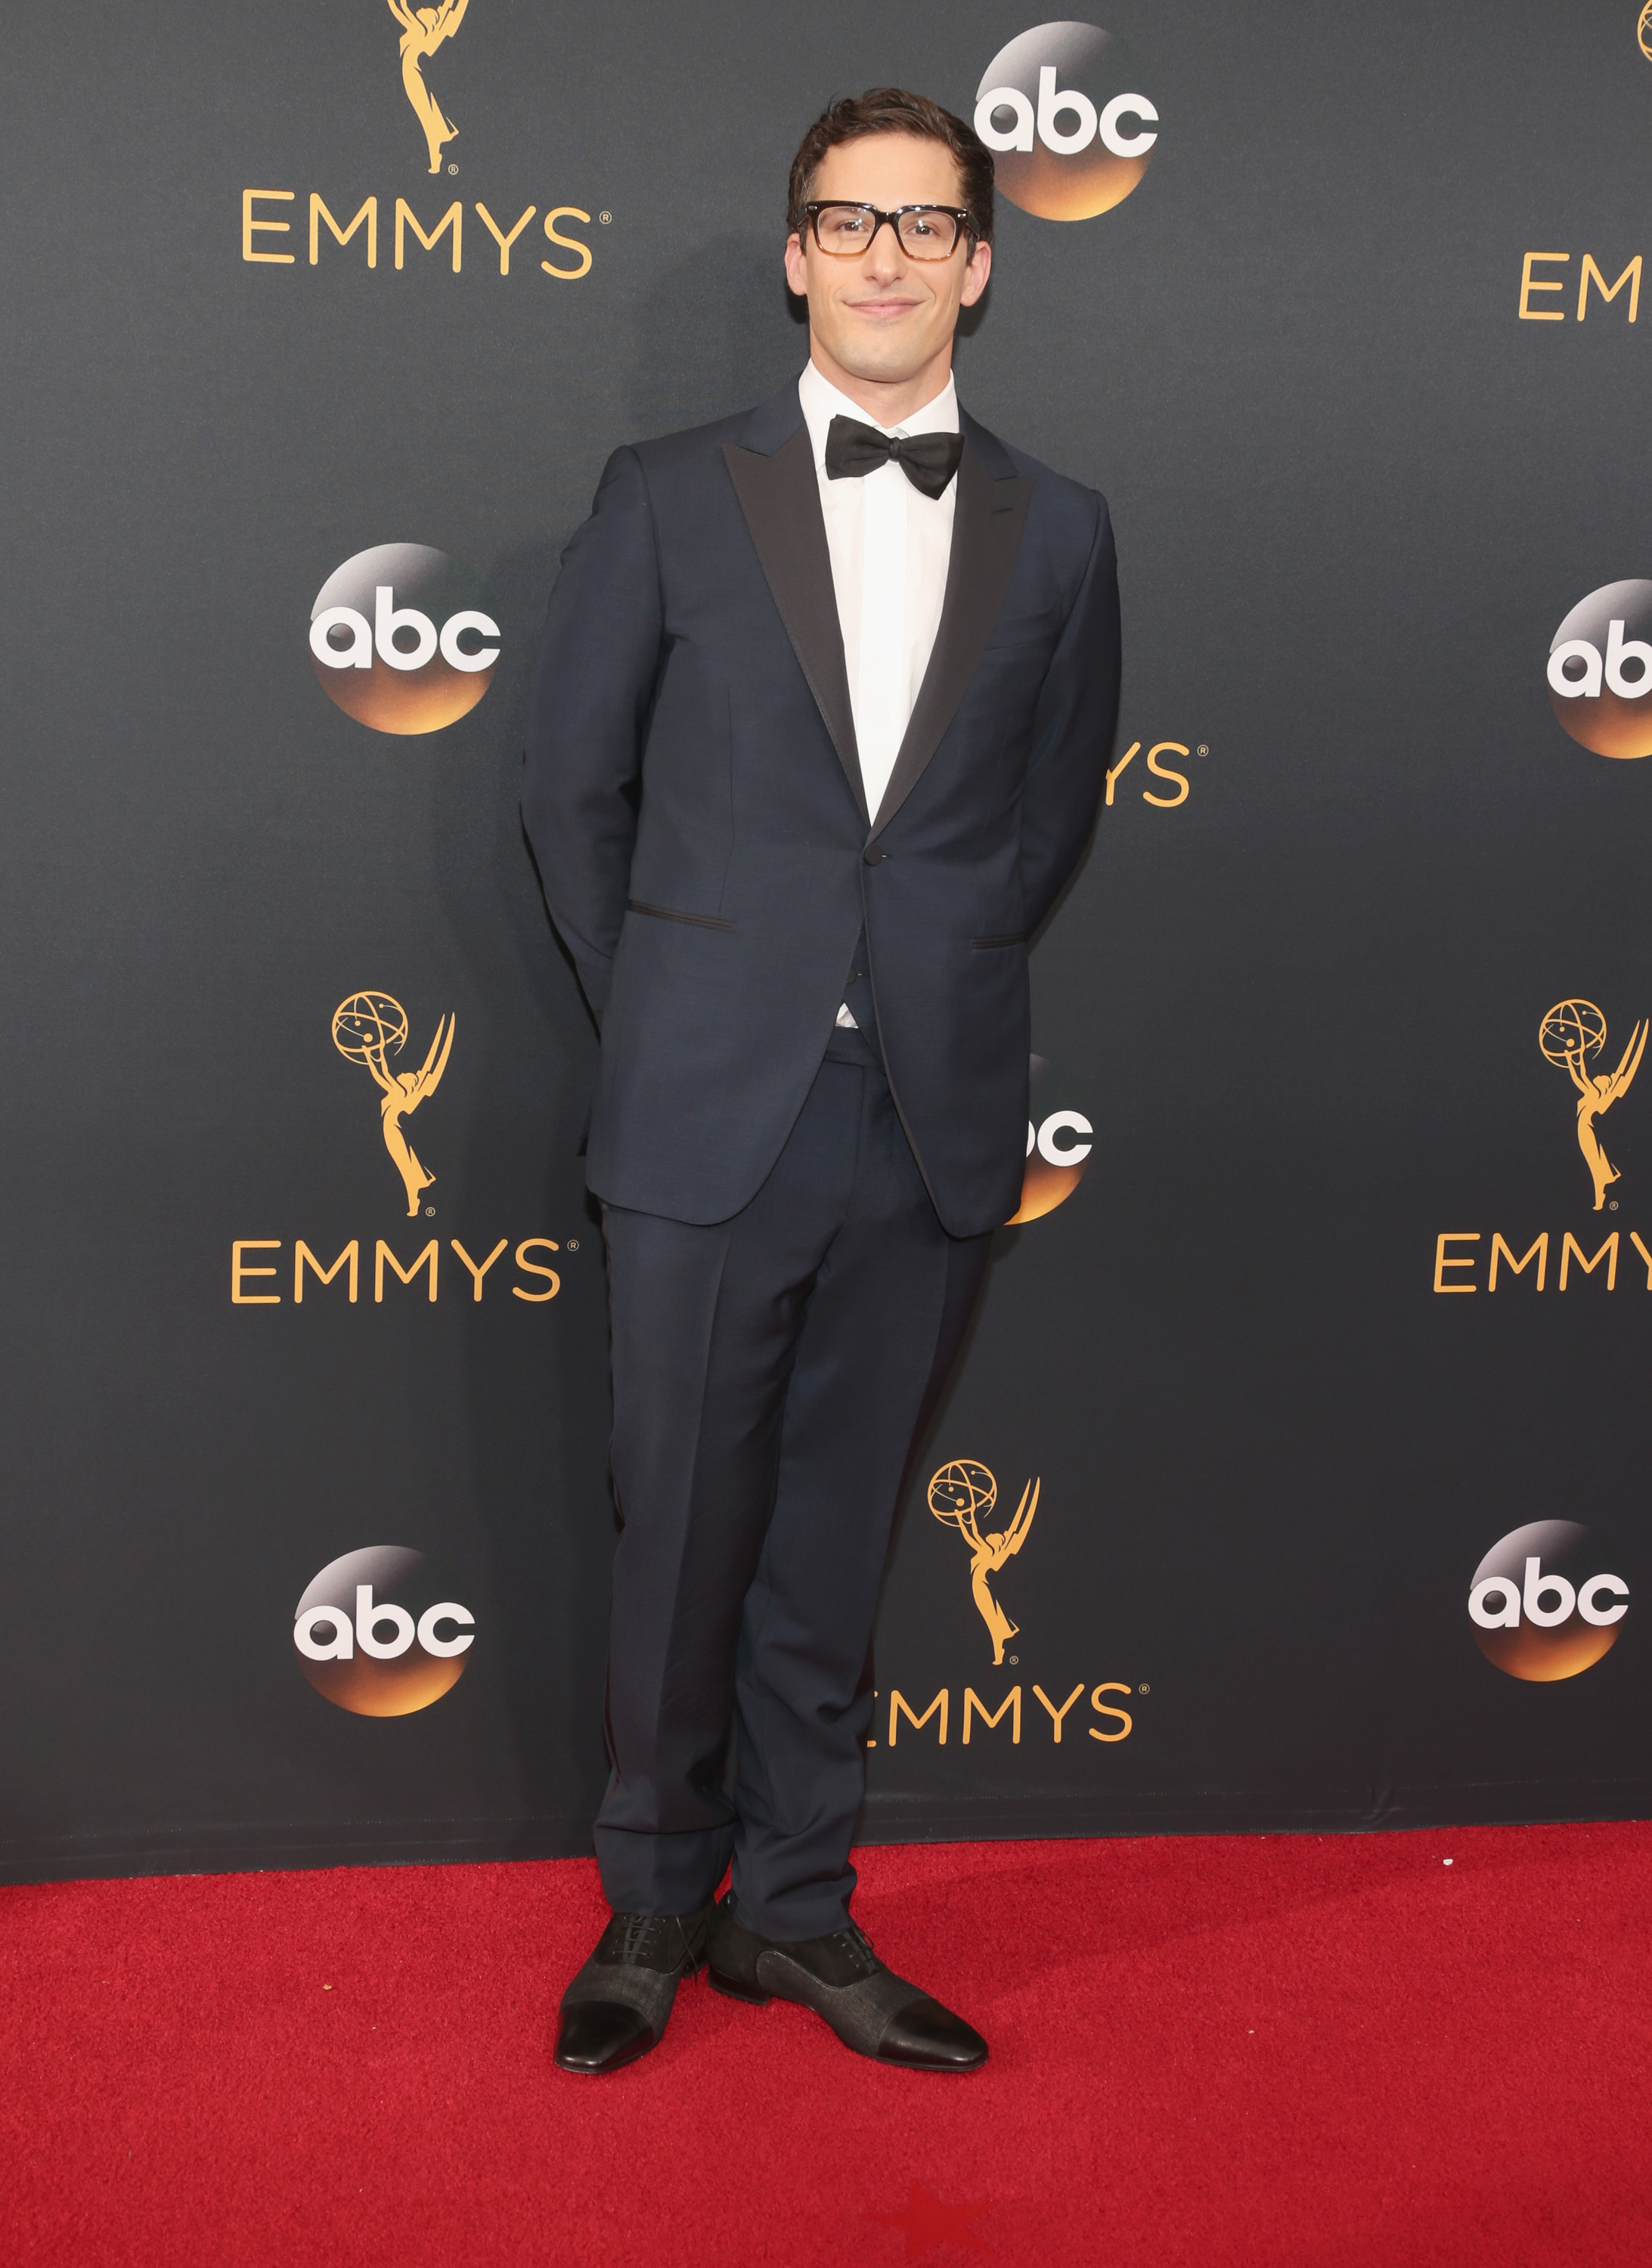 Andy Samberg arrives at the 68th Annual Primetime Emmy Awards at Microsoft Theater on Sept. 18, 2016 in Los Angeles.